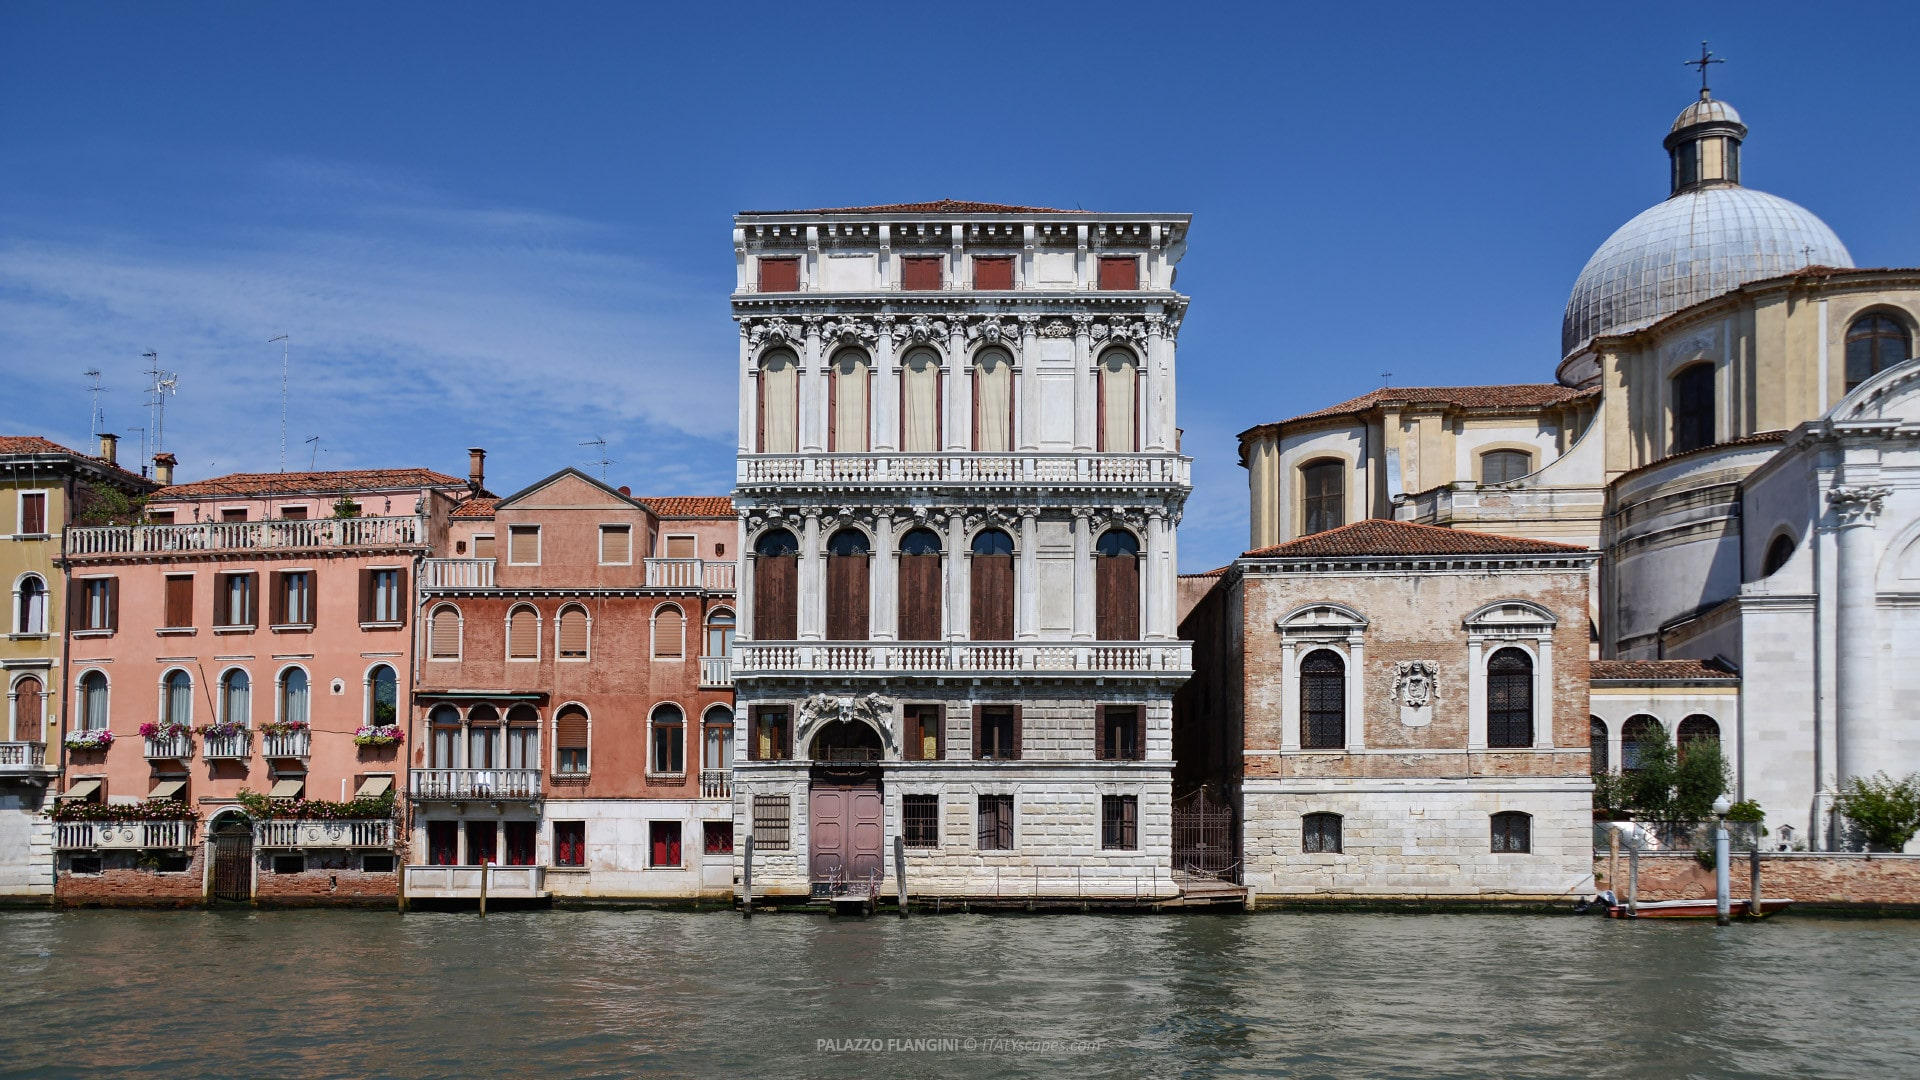 PALAZZO FLANGINI - An Interesting Palace in Venice